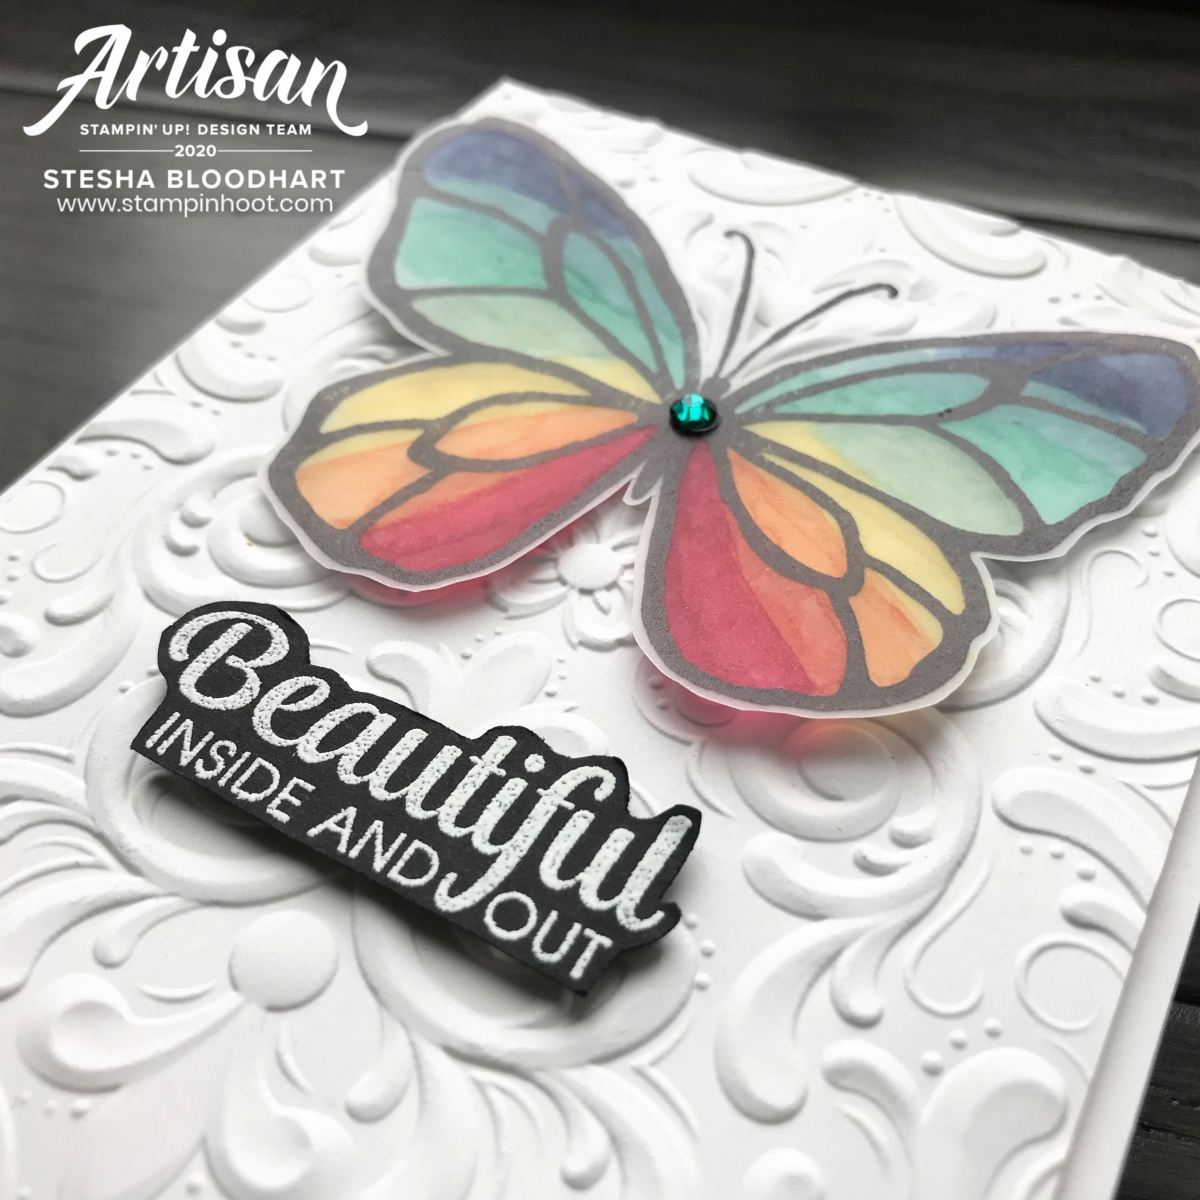 Beautiful Day Stamp Set by Stampin' Up! Card by Stesha Bloodhart, Stampin' Hoot! 2020 Artisan Design Team